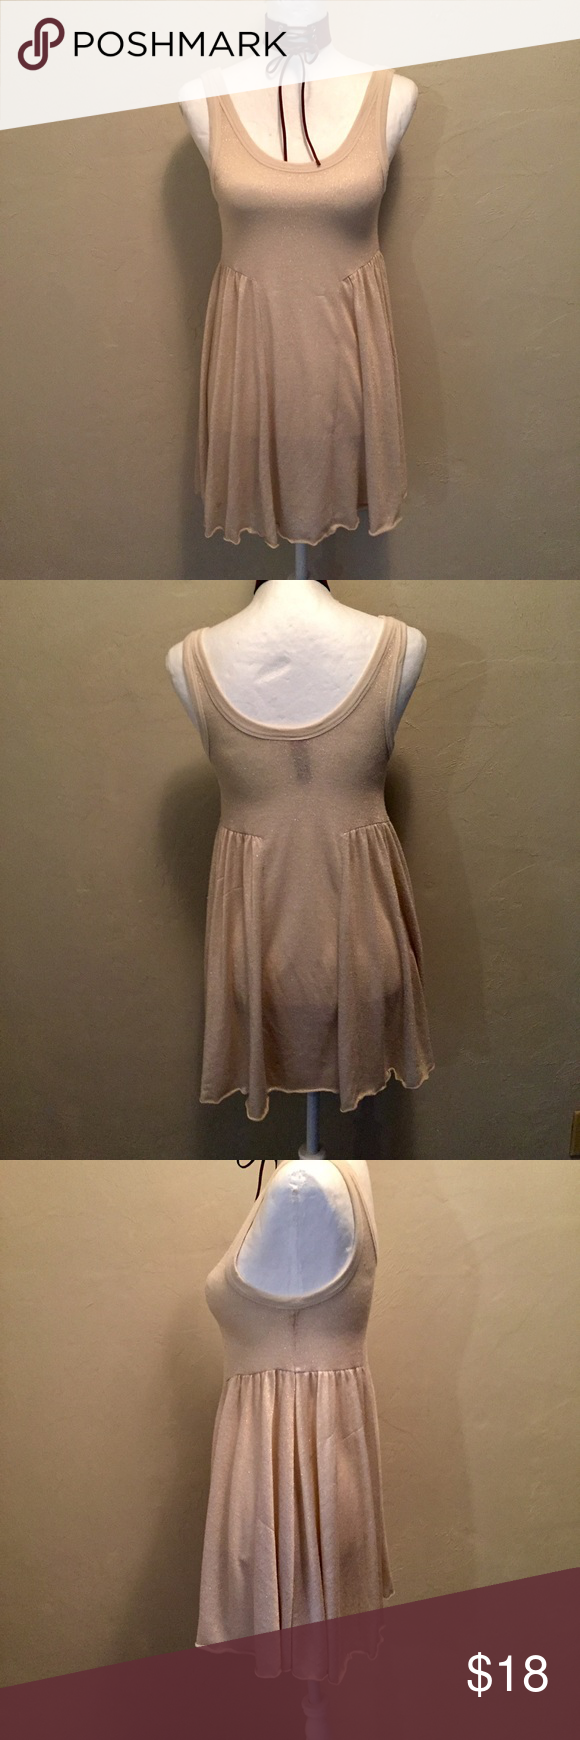 Free People Beach cruise Mini XS Size XS, cotton, rayon, Knit, gold threading makes the dress stand out adorable pull over with a skirted bottom, fully lined Free People Dresses Mini